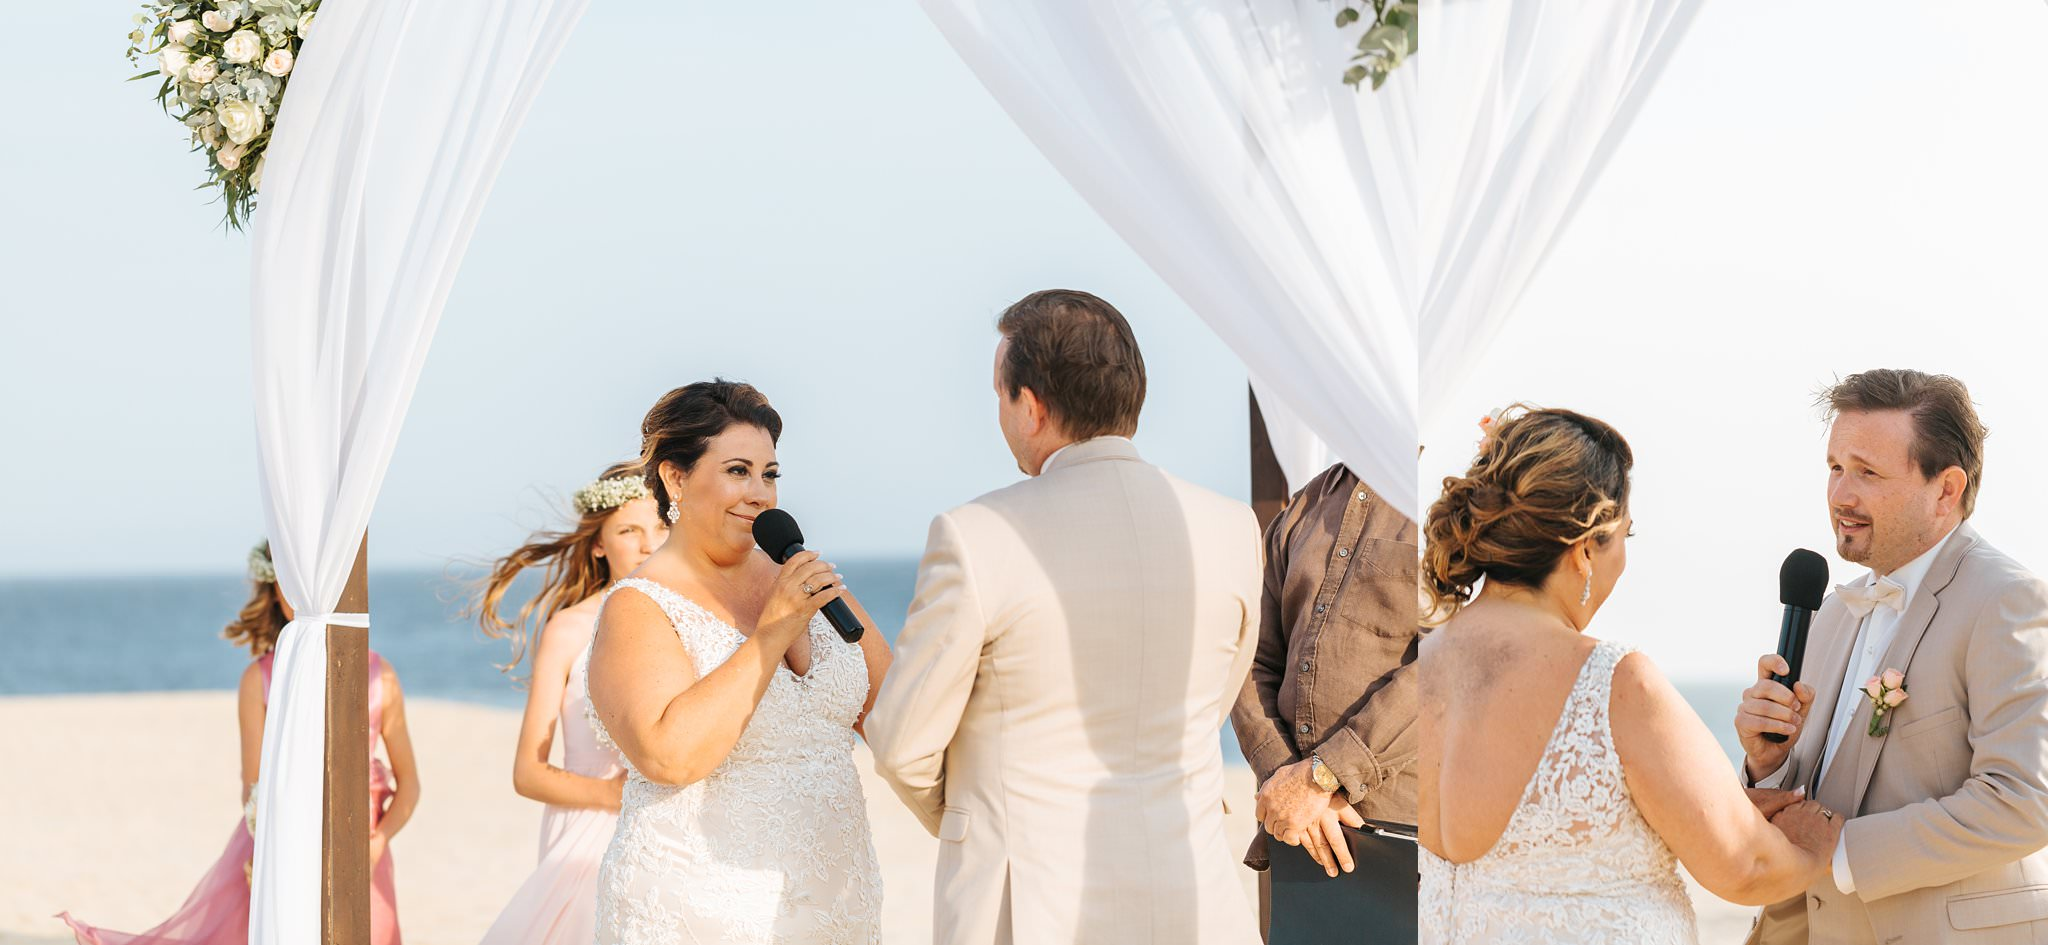 Beach Wedding - Couple says vows - https://brittneyhannonphotography.com